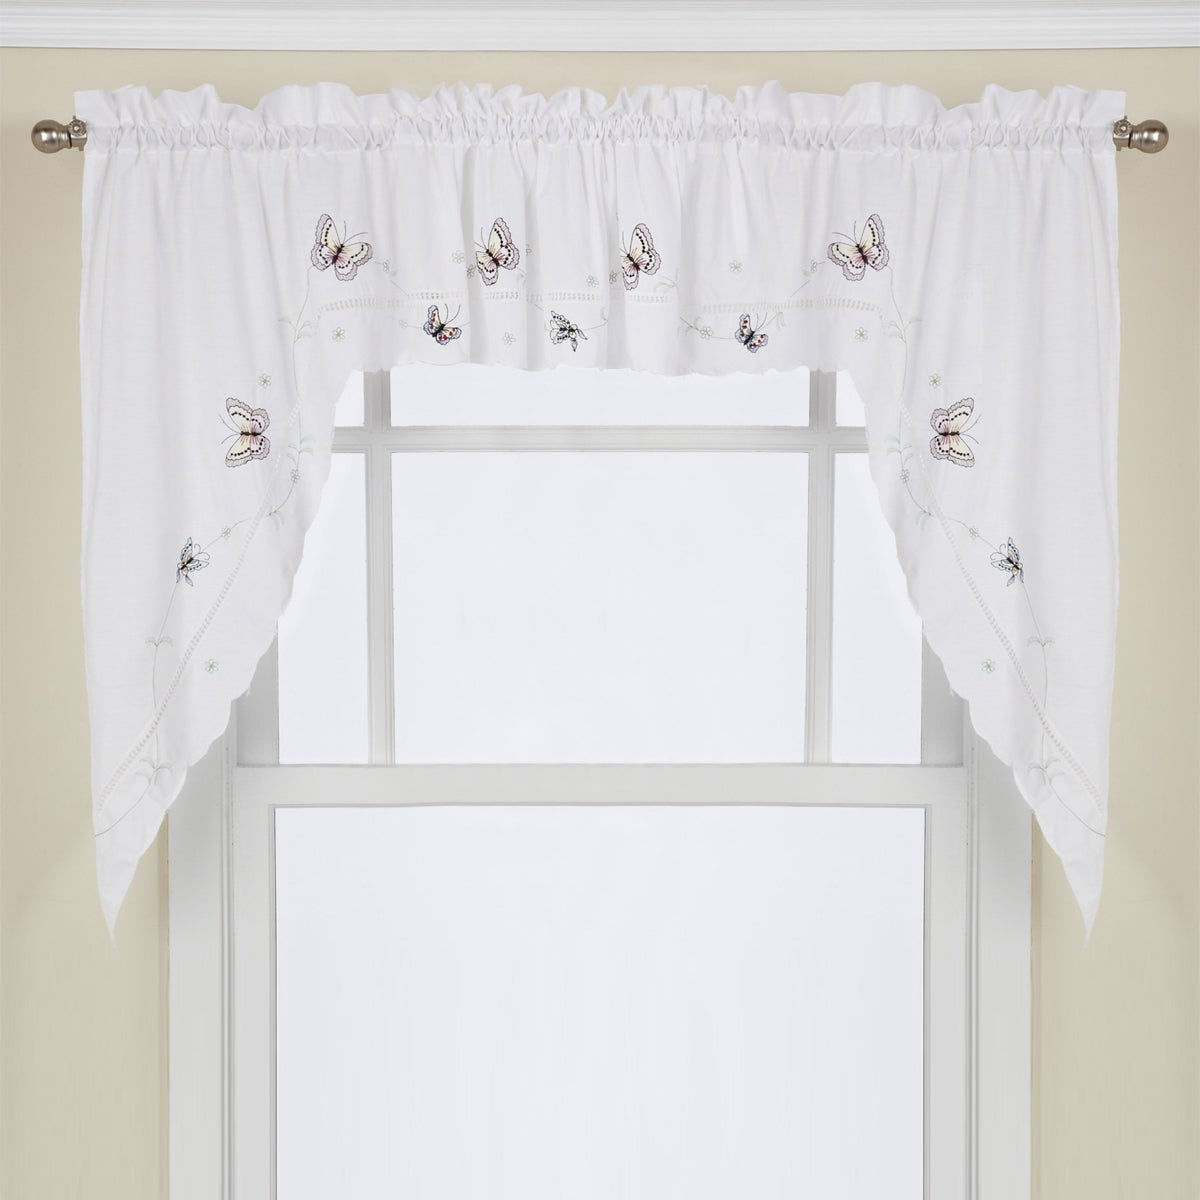 Preferred Floral Embroidered Sheer Kitchen Curtain Tiers, Swags And Valances For Fluttering Butterfly White Embroidered Tier, Swag, Or Valance Kitchen Curtains (View 15 of 20)